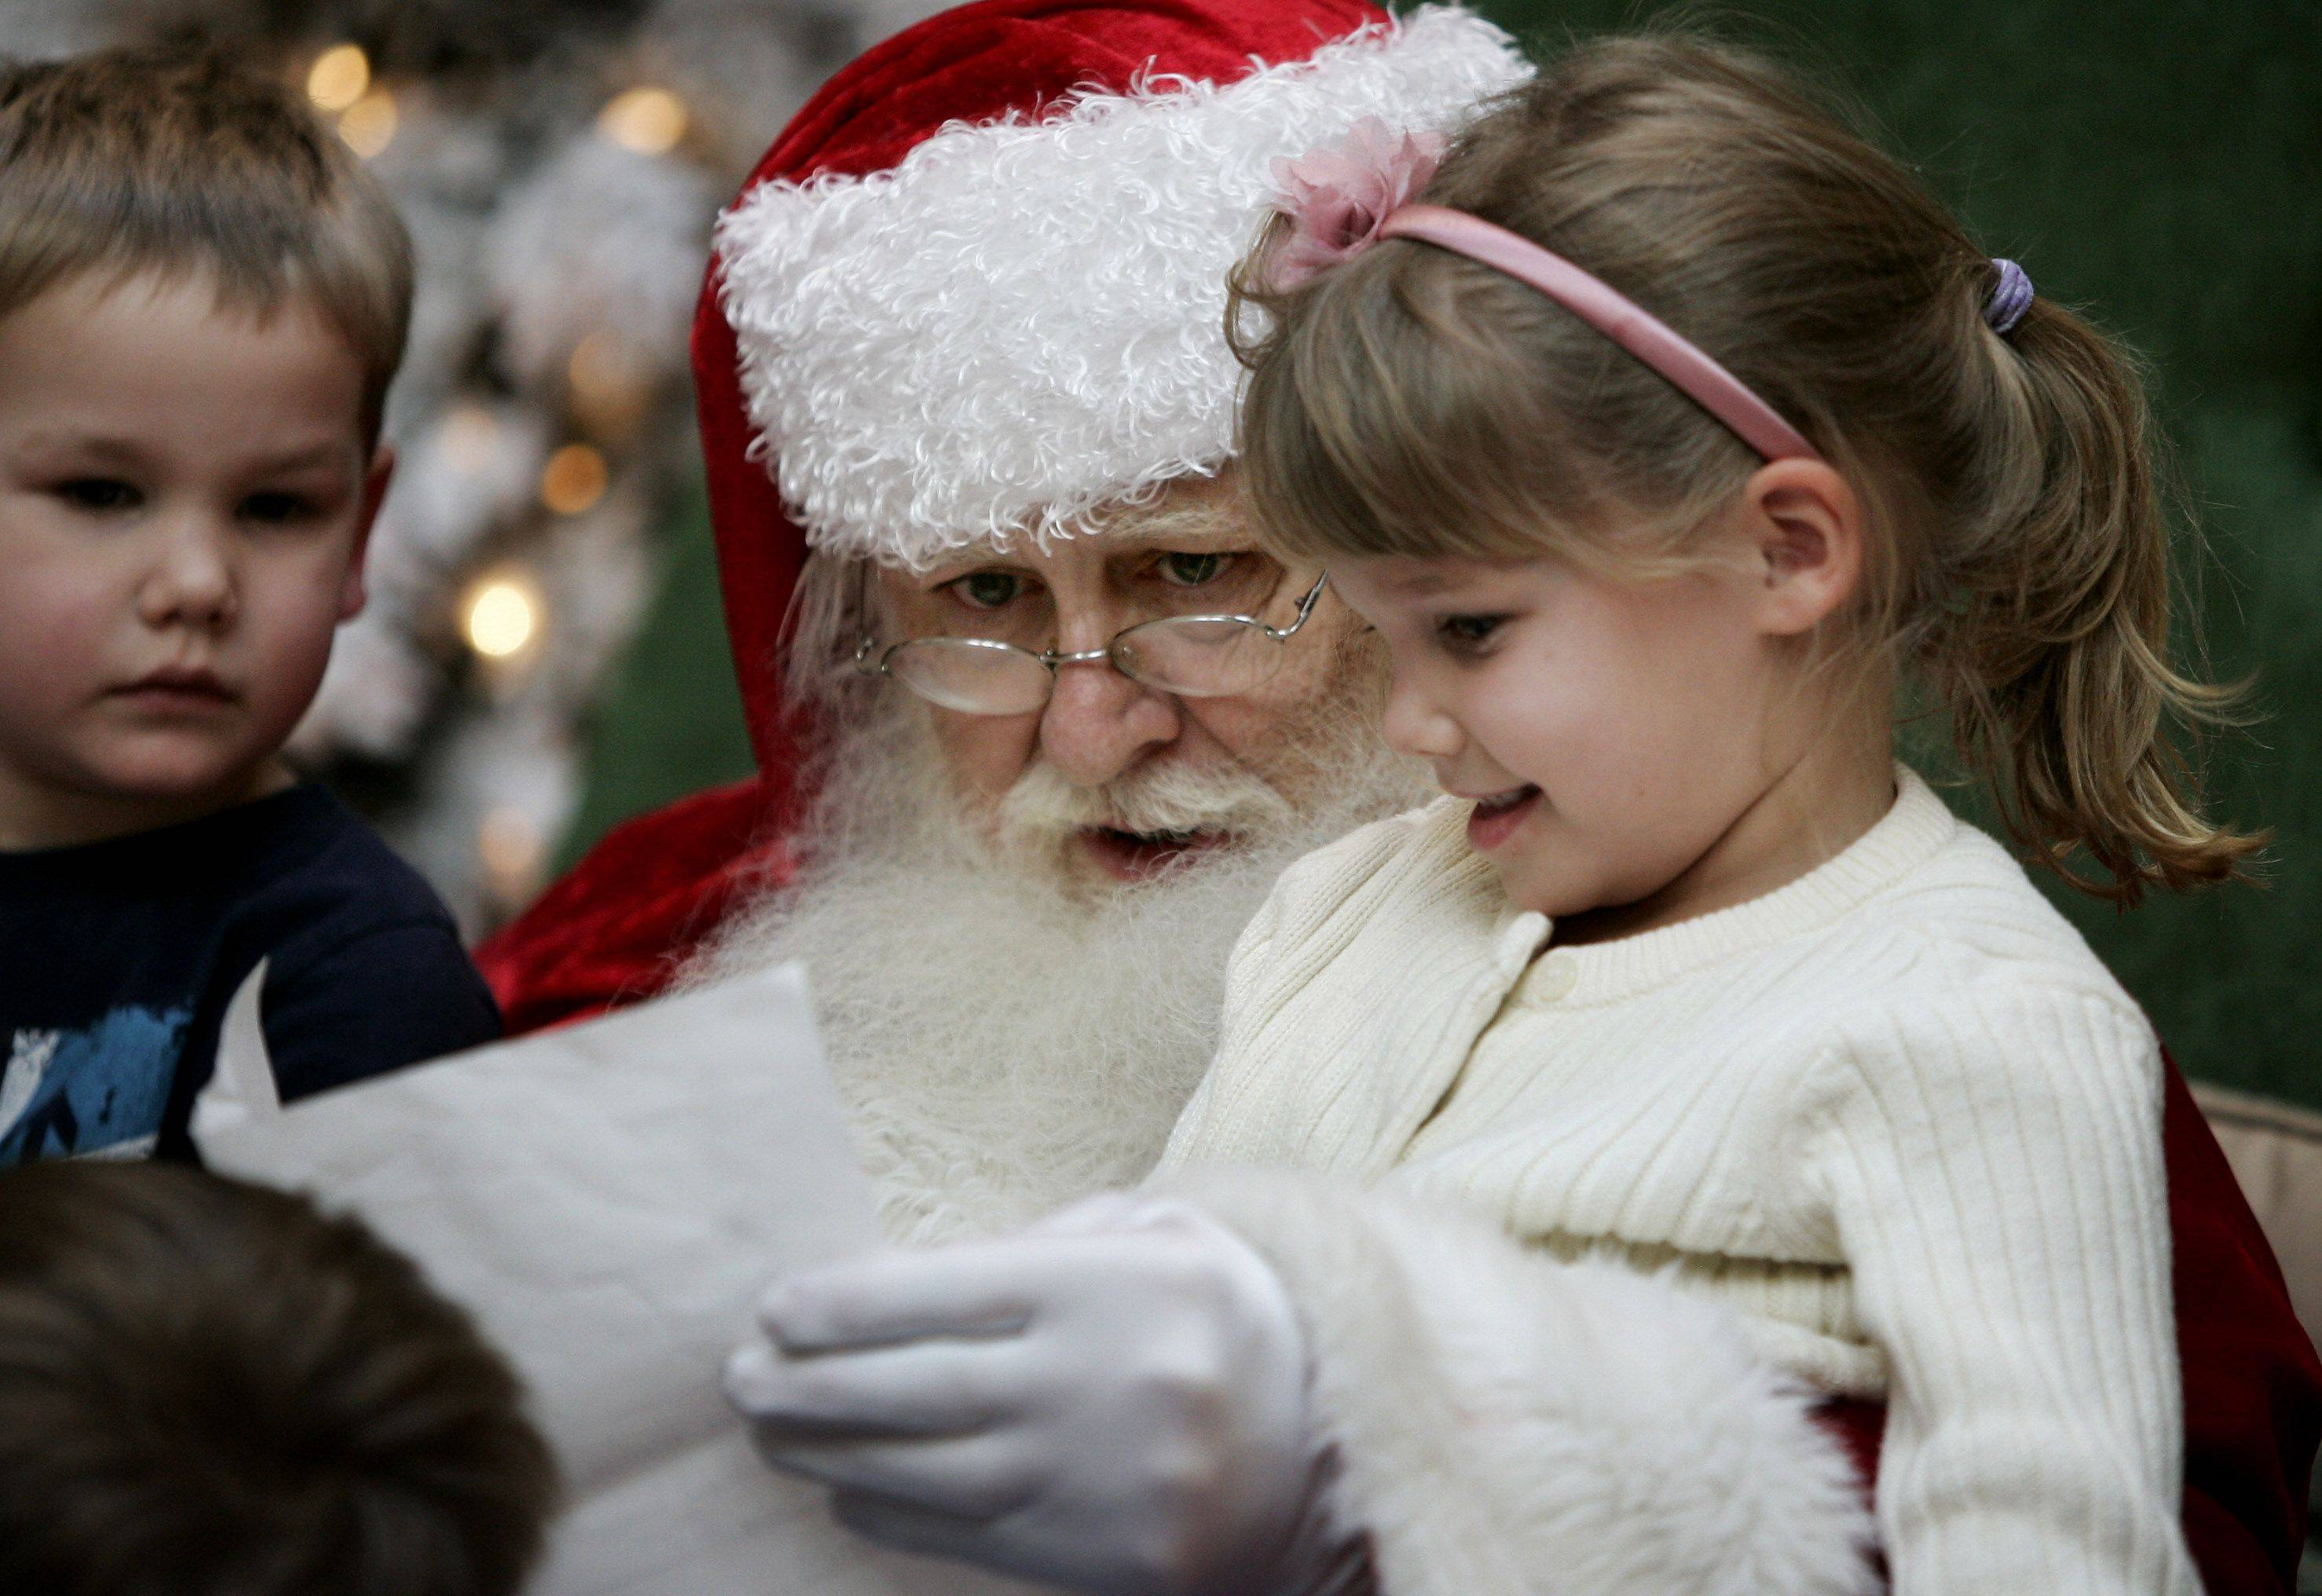 Santa Claus reads a Christmas wish list from Erin Casper, 5, of Wauconda while her brother Gavin, 3, looks on as Santa greets children at Westfield Hawthorn Shopping Center in Vernon Hills. Erin's list included markers, a Pillow Pet, and a purple, girl monkey.